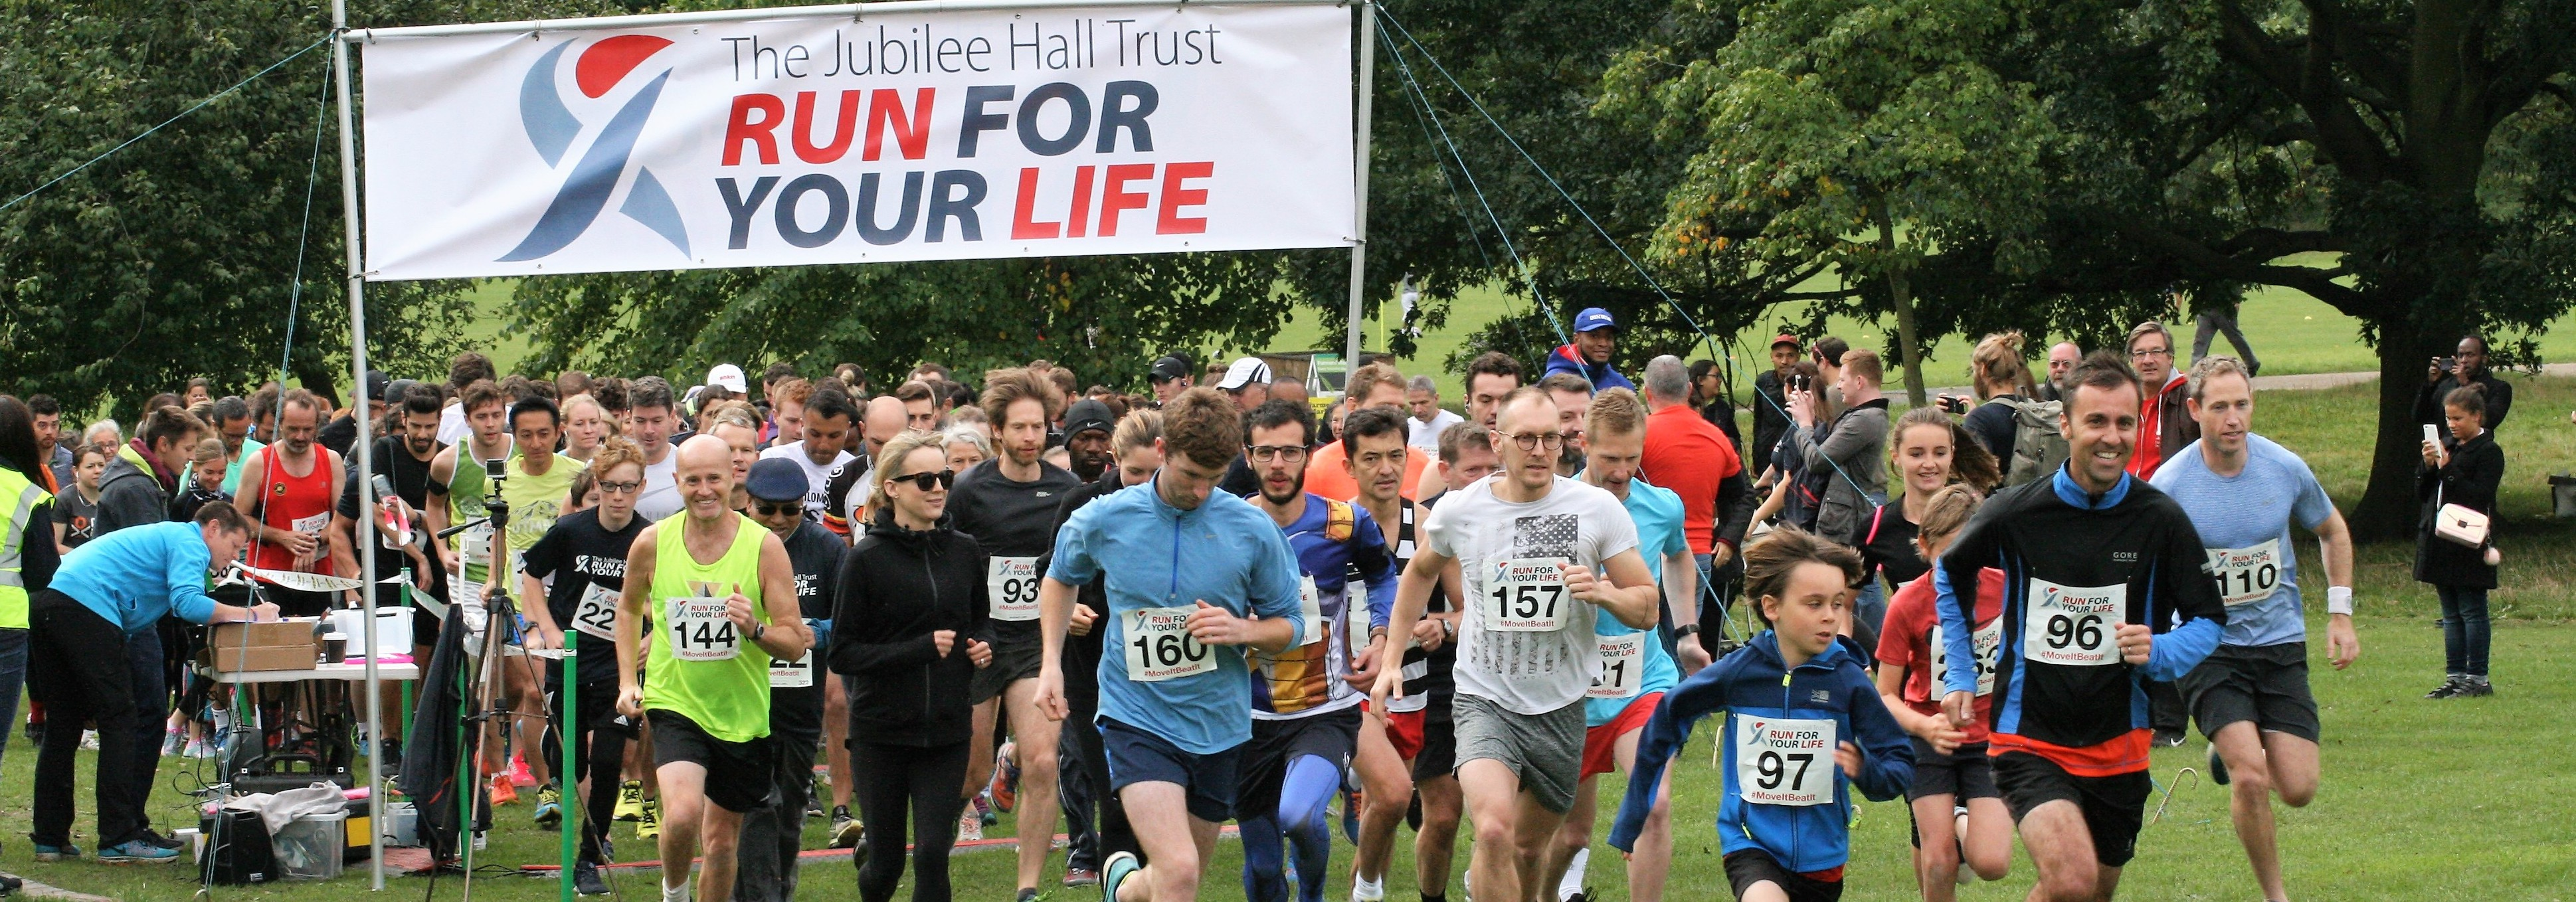 Hampstead Heath 10K, 5K and Fun Run Trail